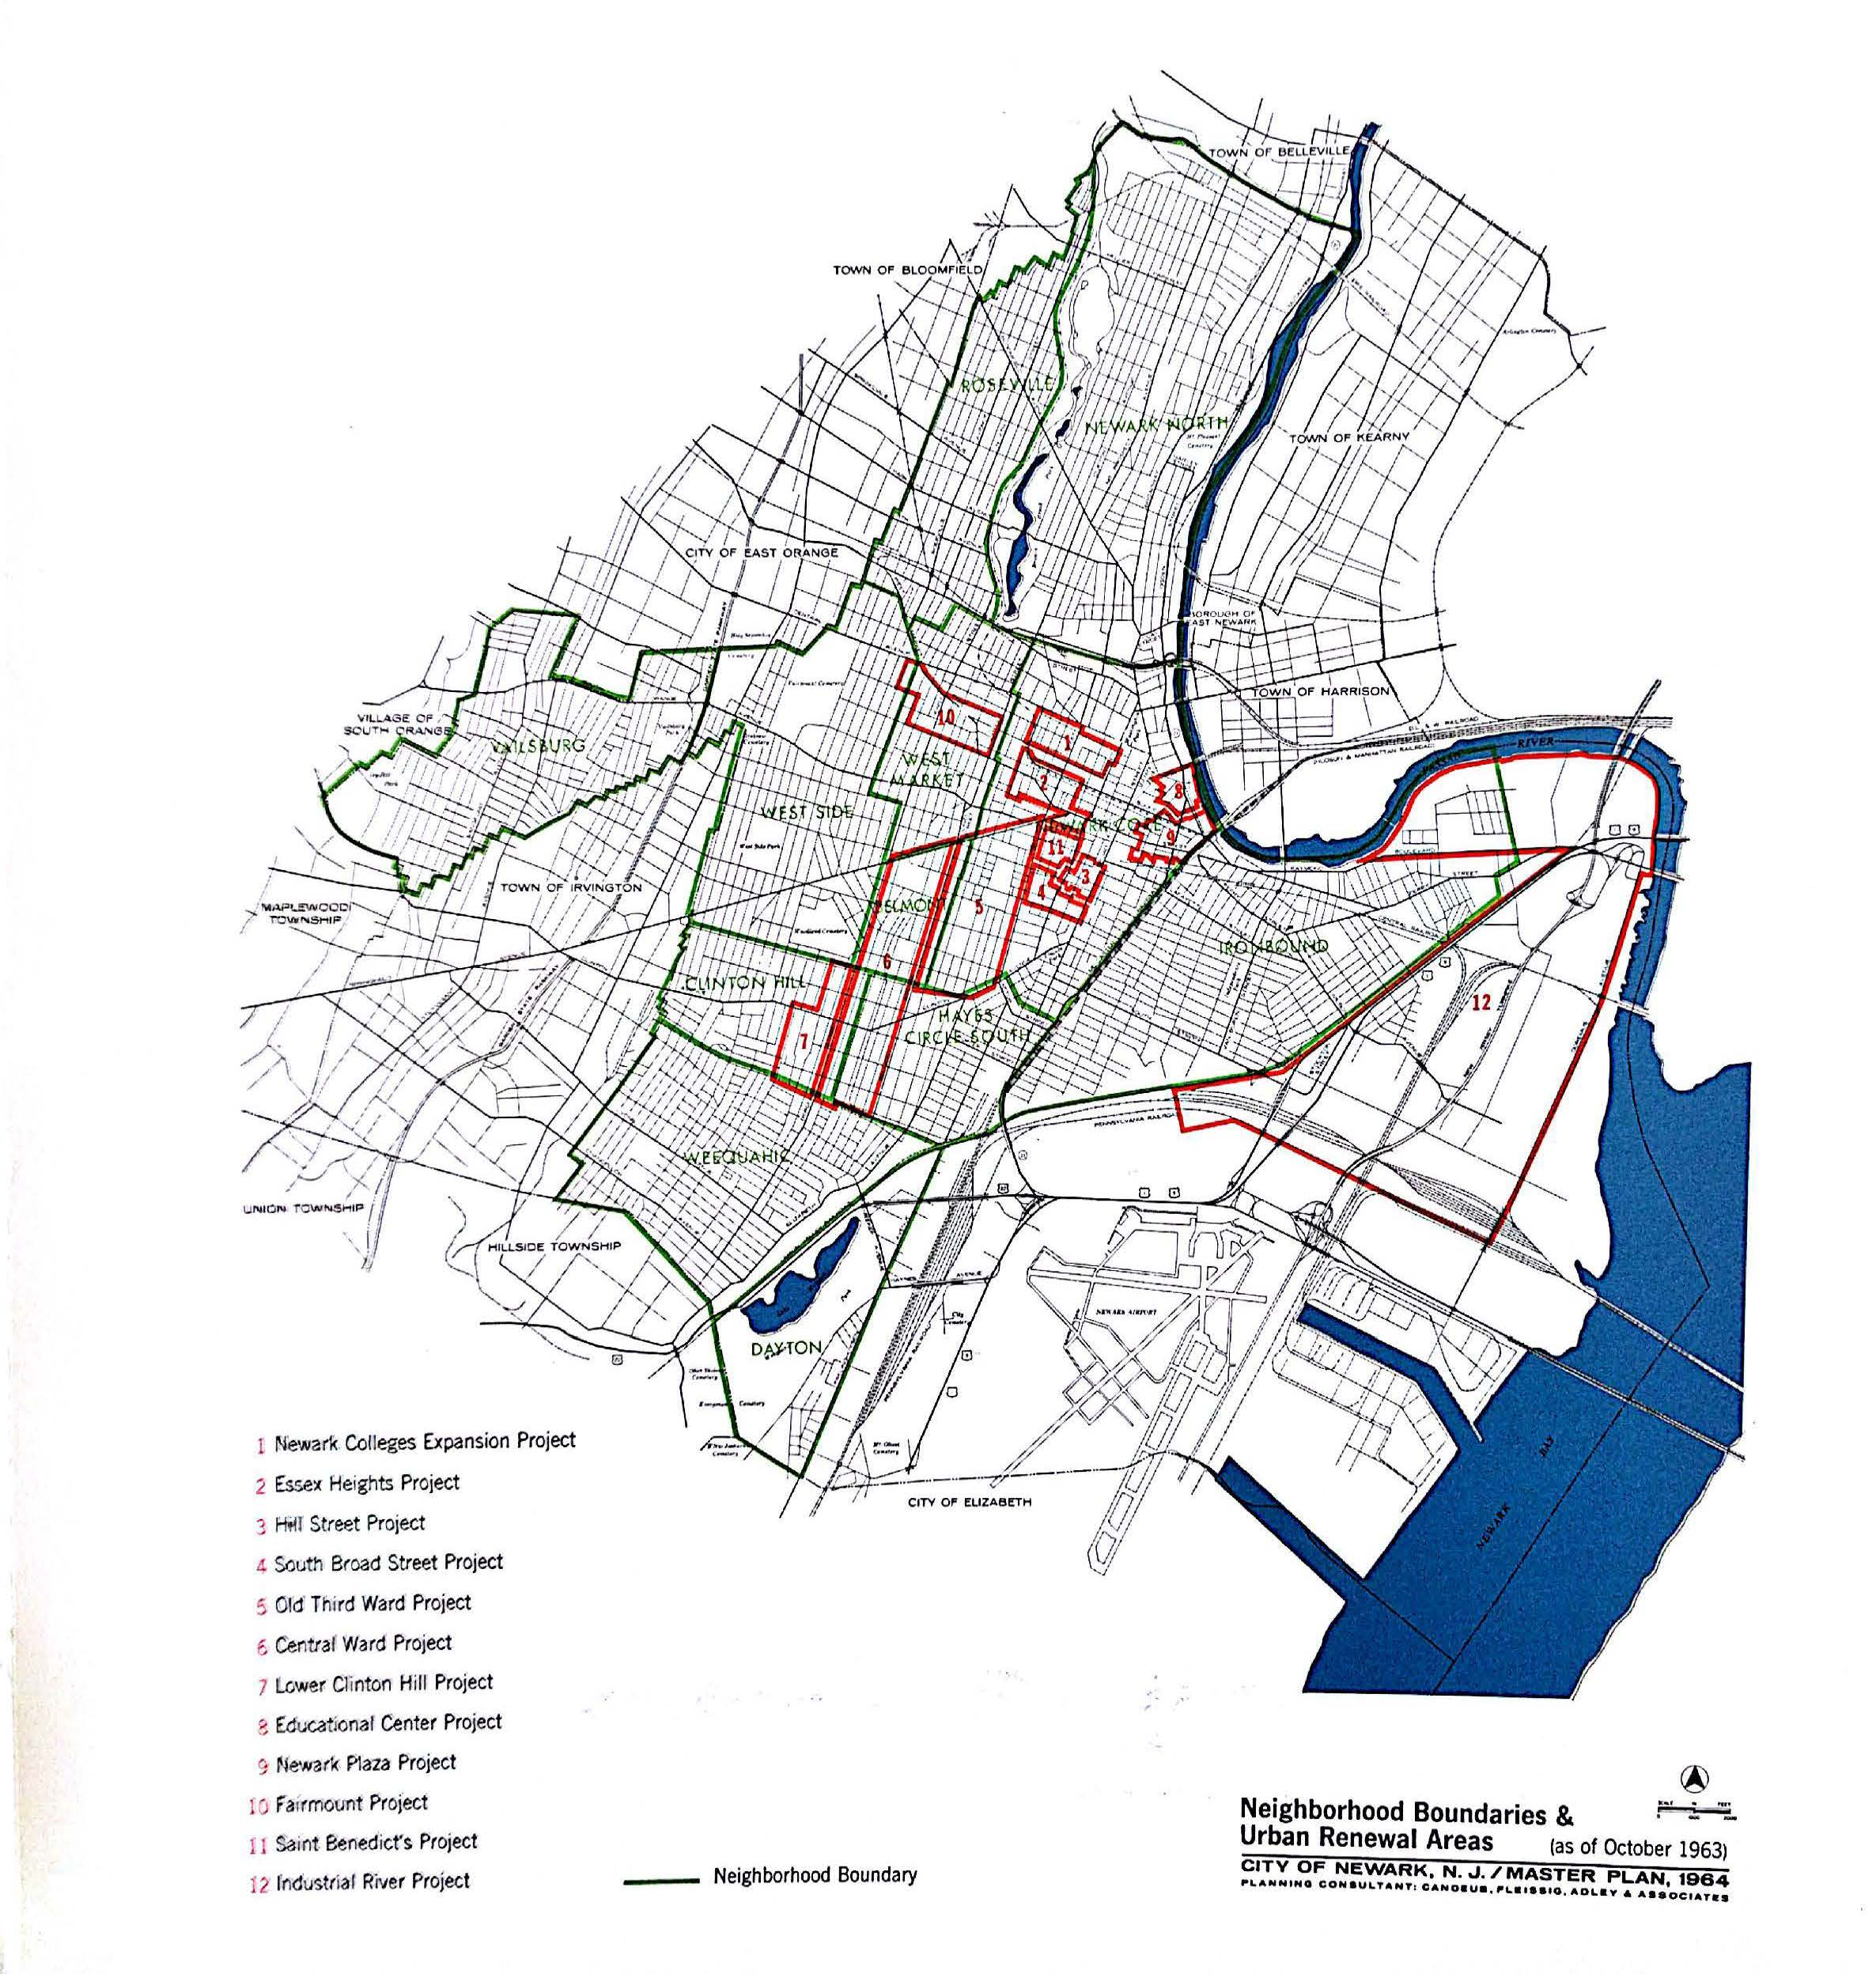 Neighborhood Boundaries and Urban Renewal Areas